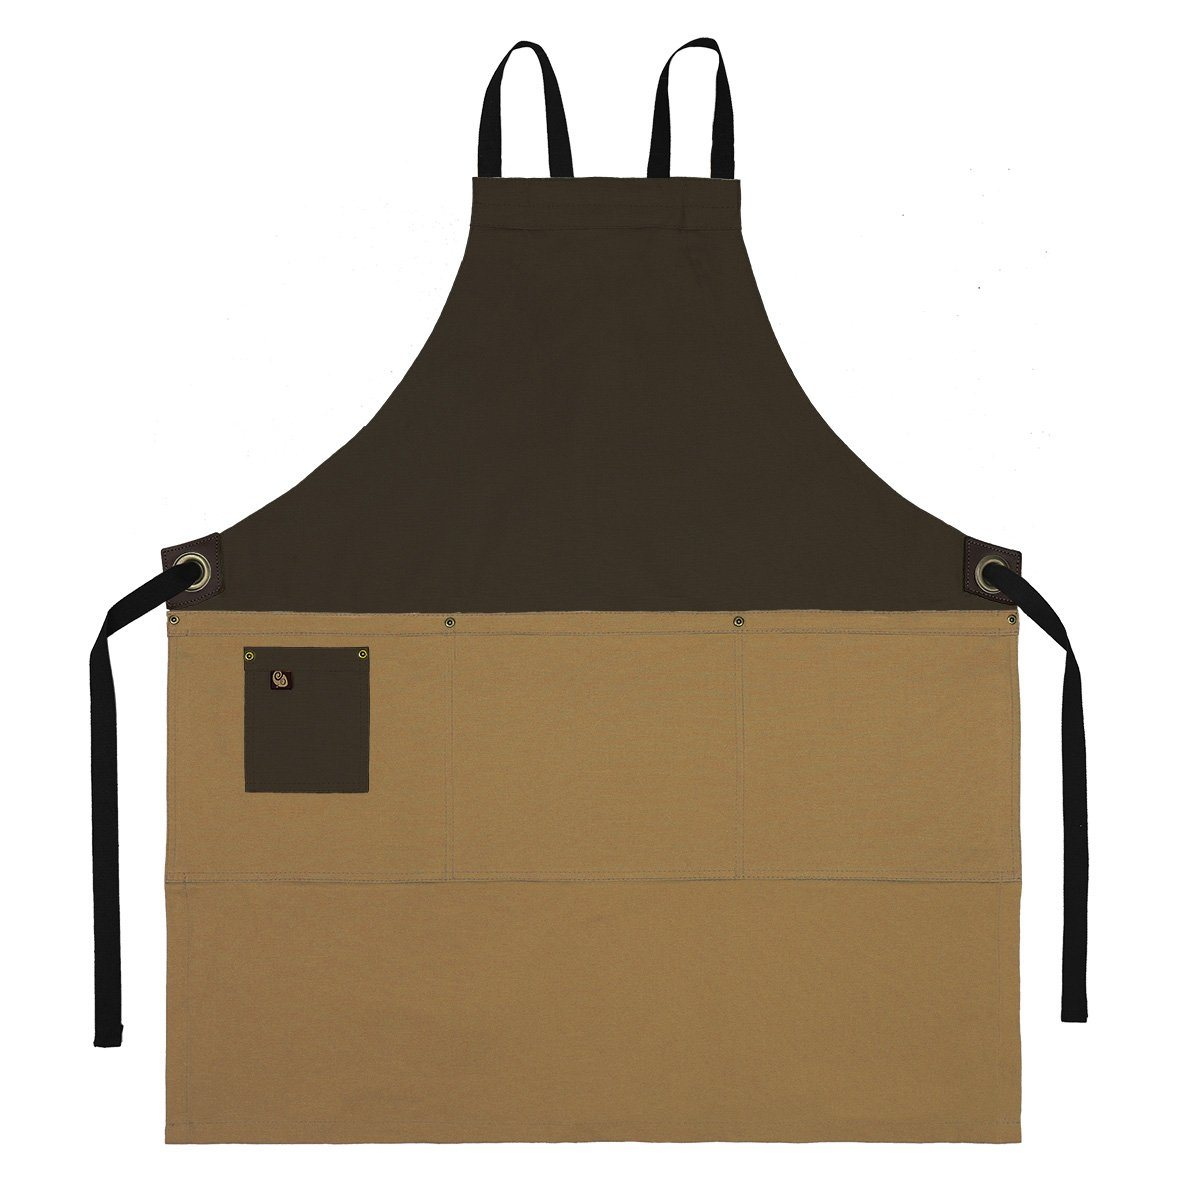 Koda Zelkova Full Bib Apron (Tobacco and Caramel)